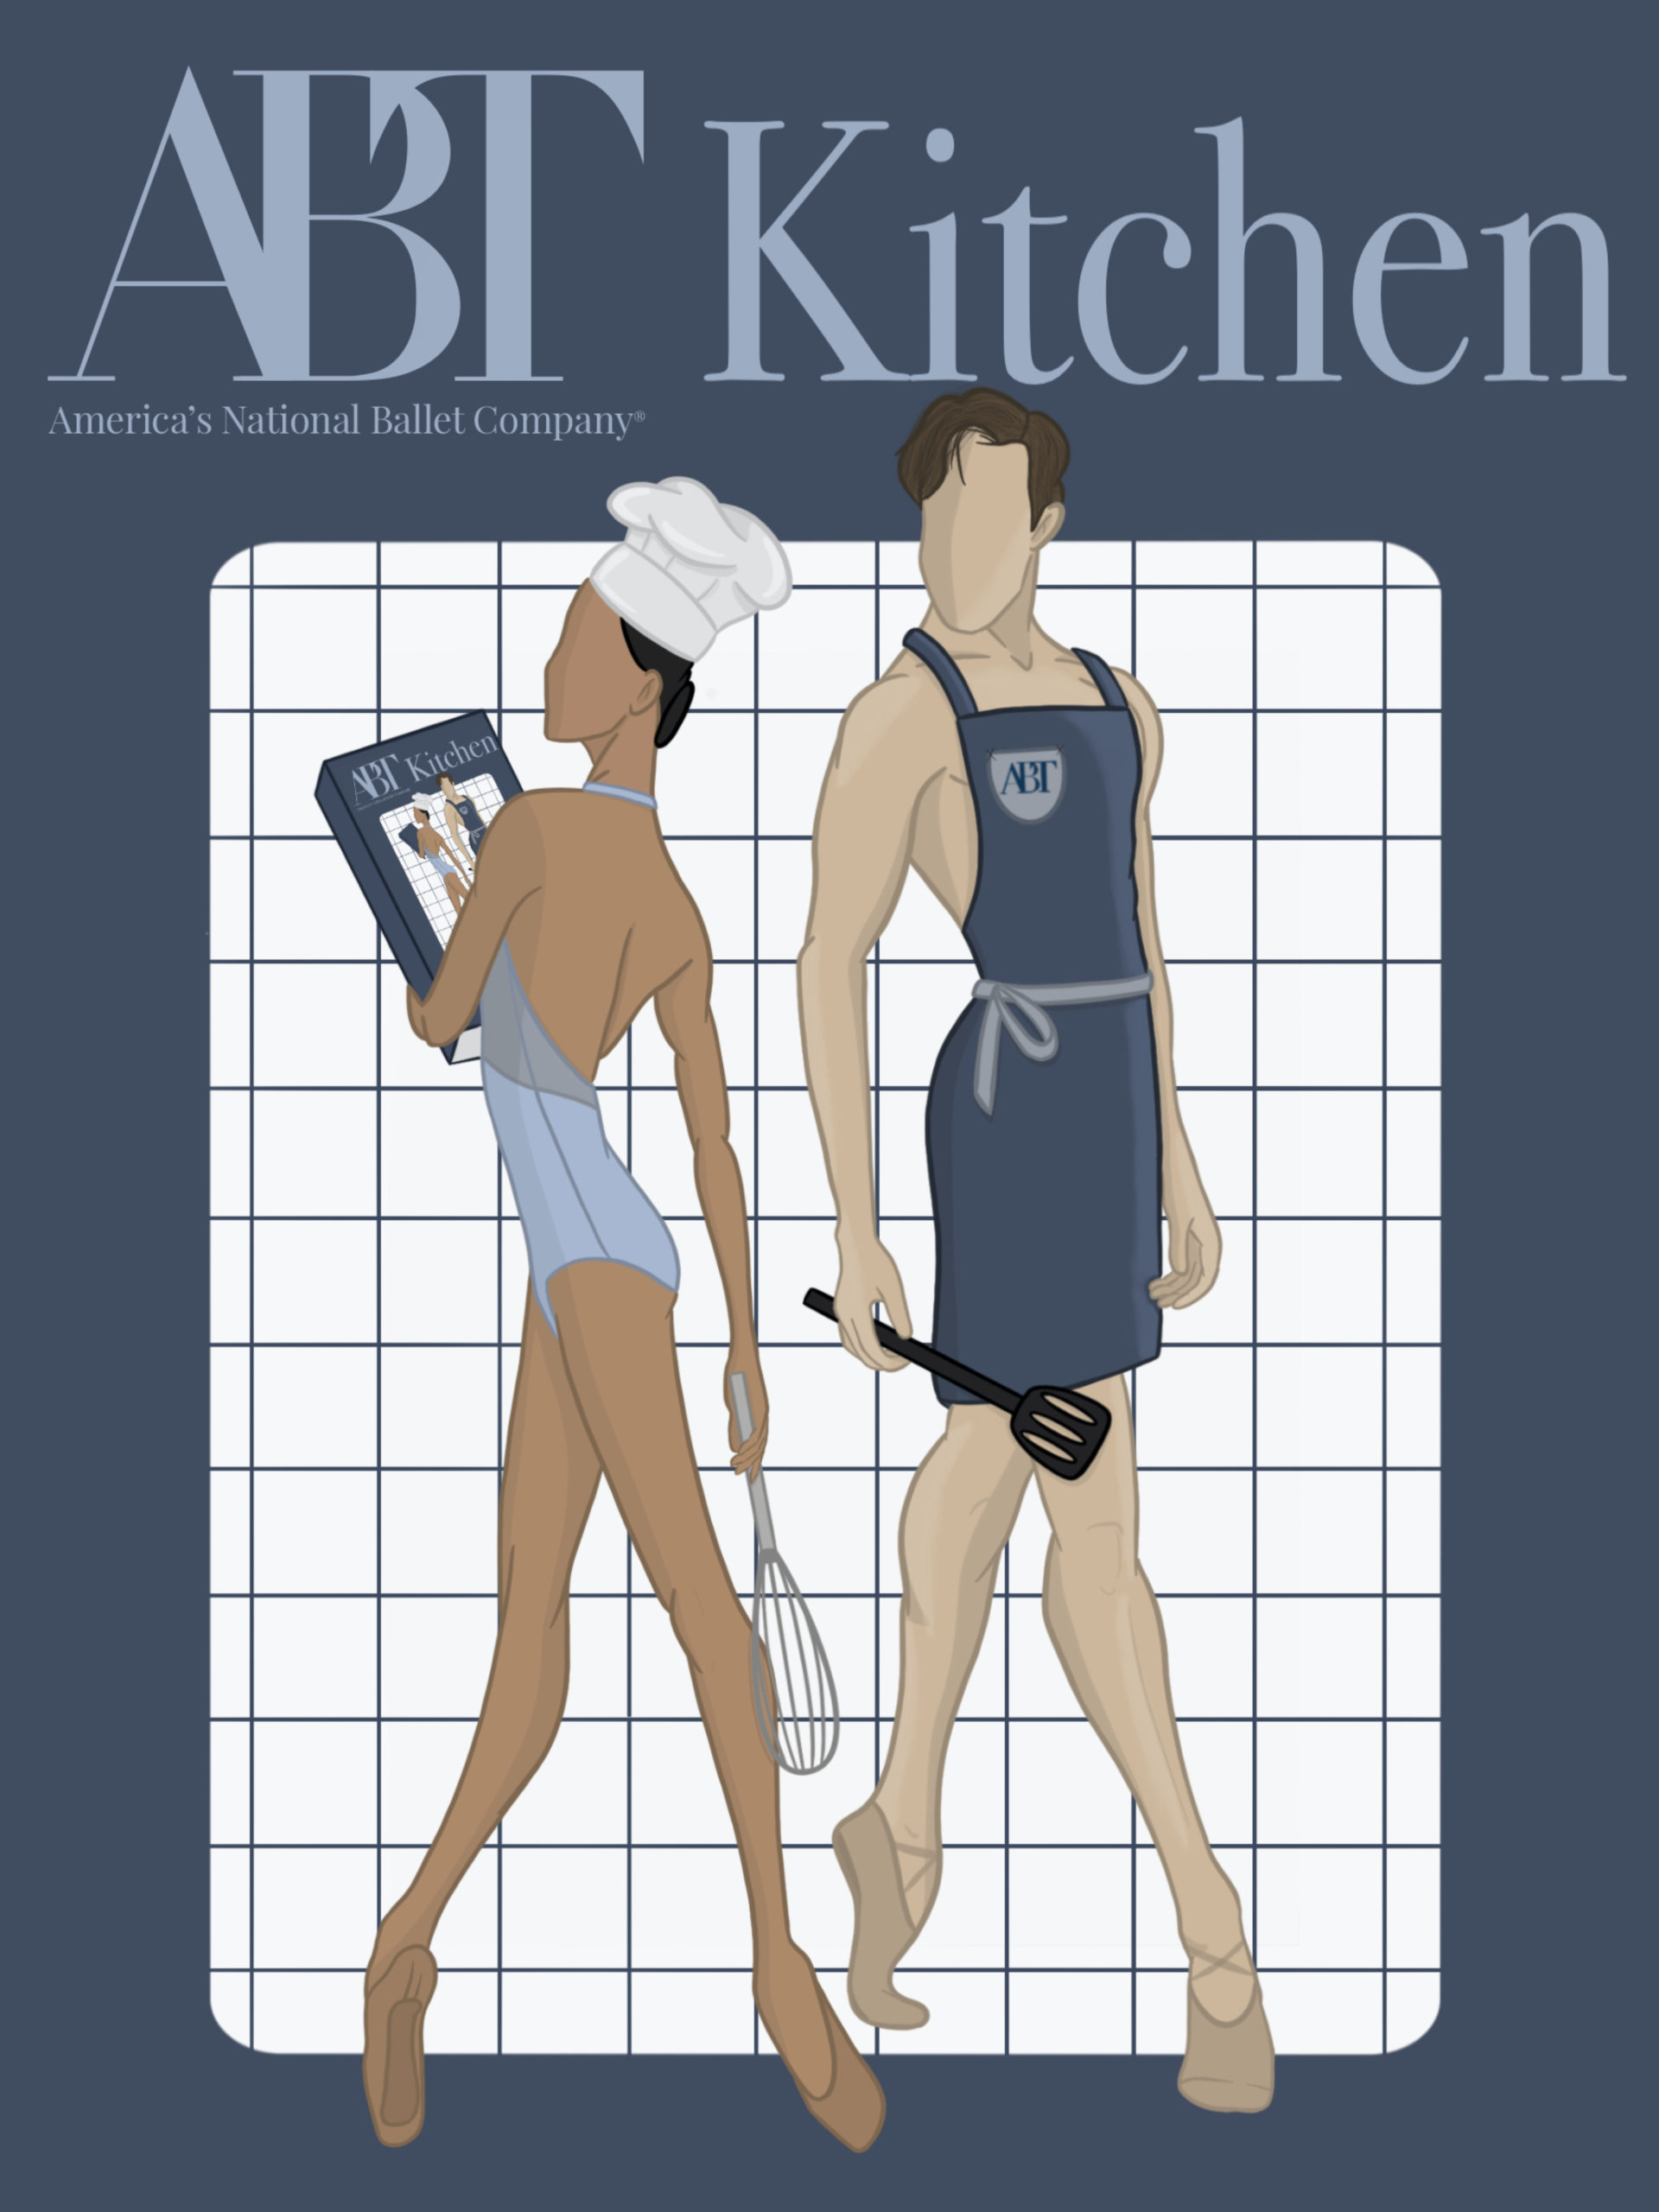 <i>ABT Kitchen</i> cover artwork by Javier Rivet.